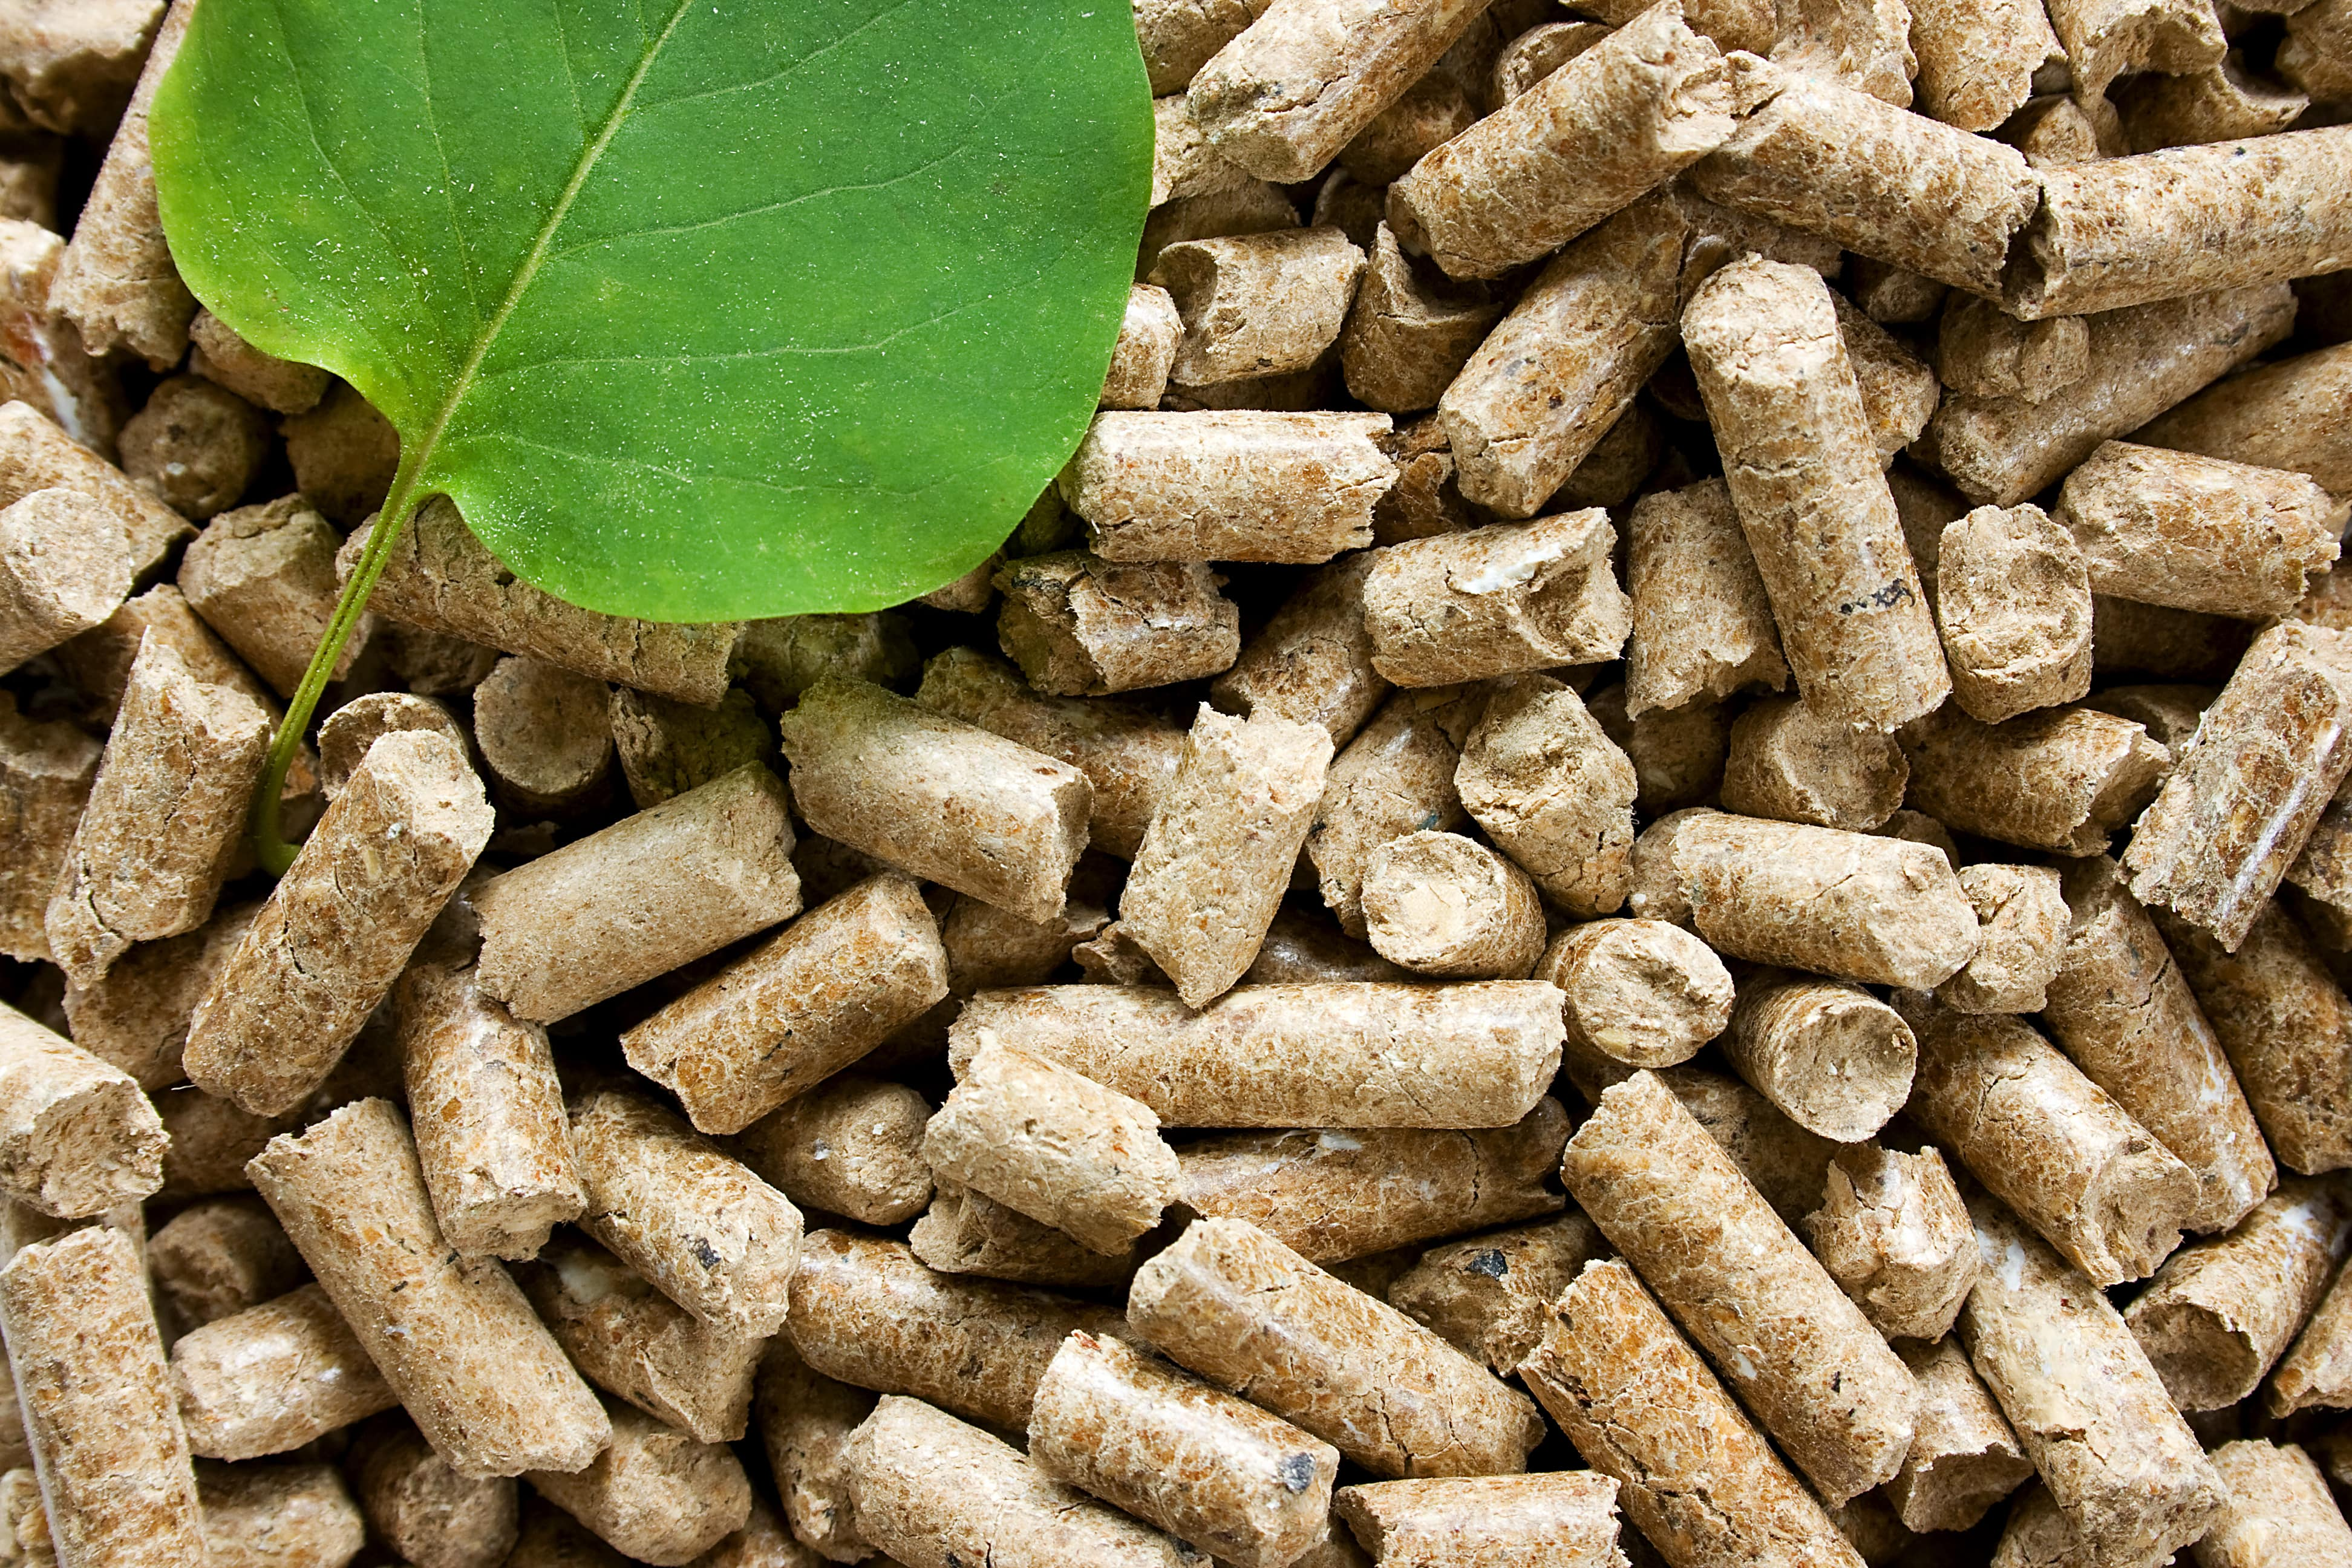 We plan to start production of wood pellets